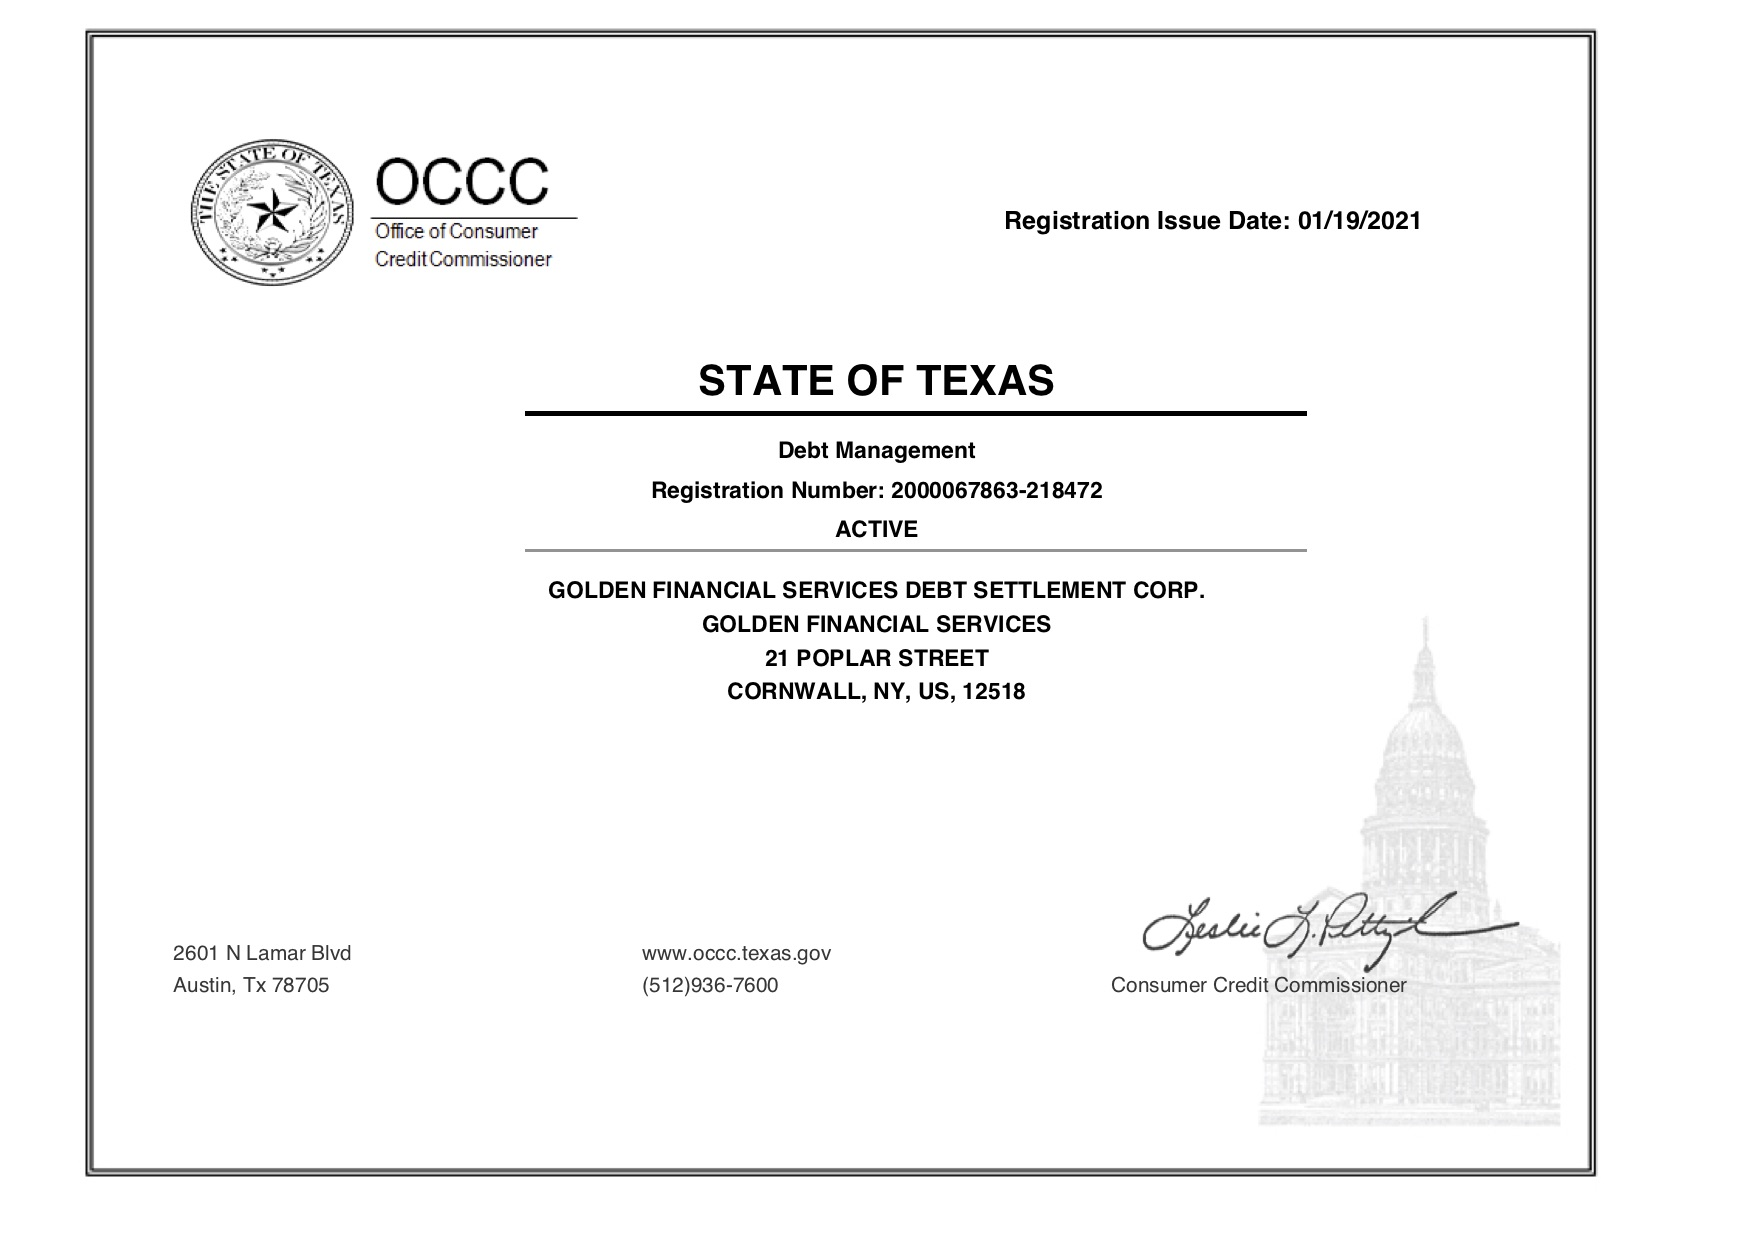 a Texas licensed debt management company